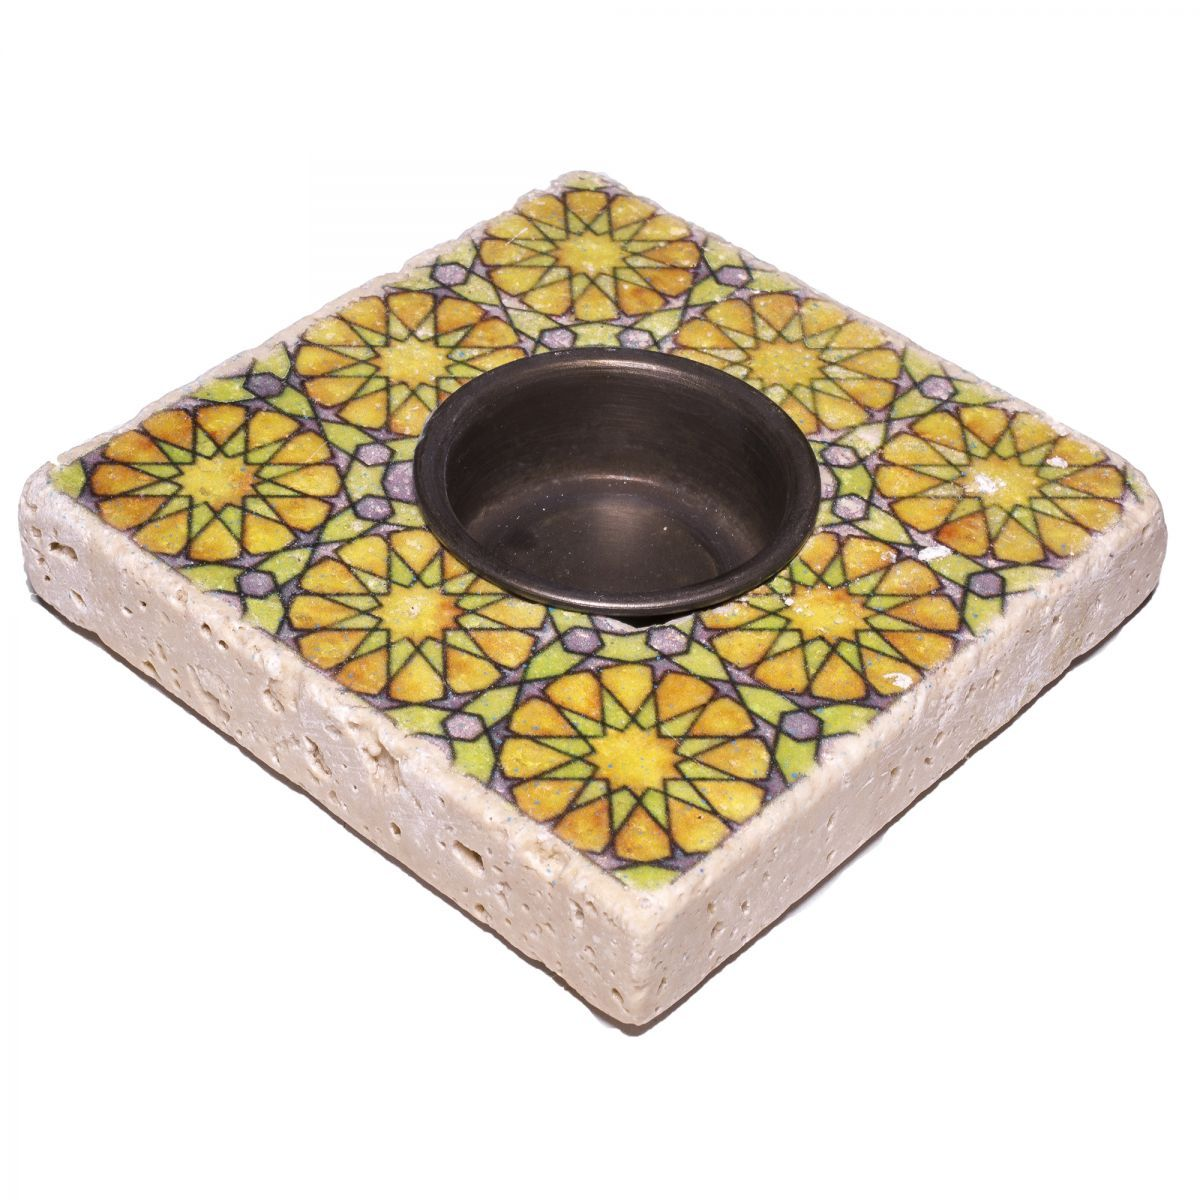 Candle Holder Lodge - Travertine 01A